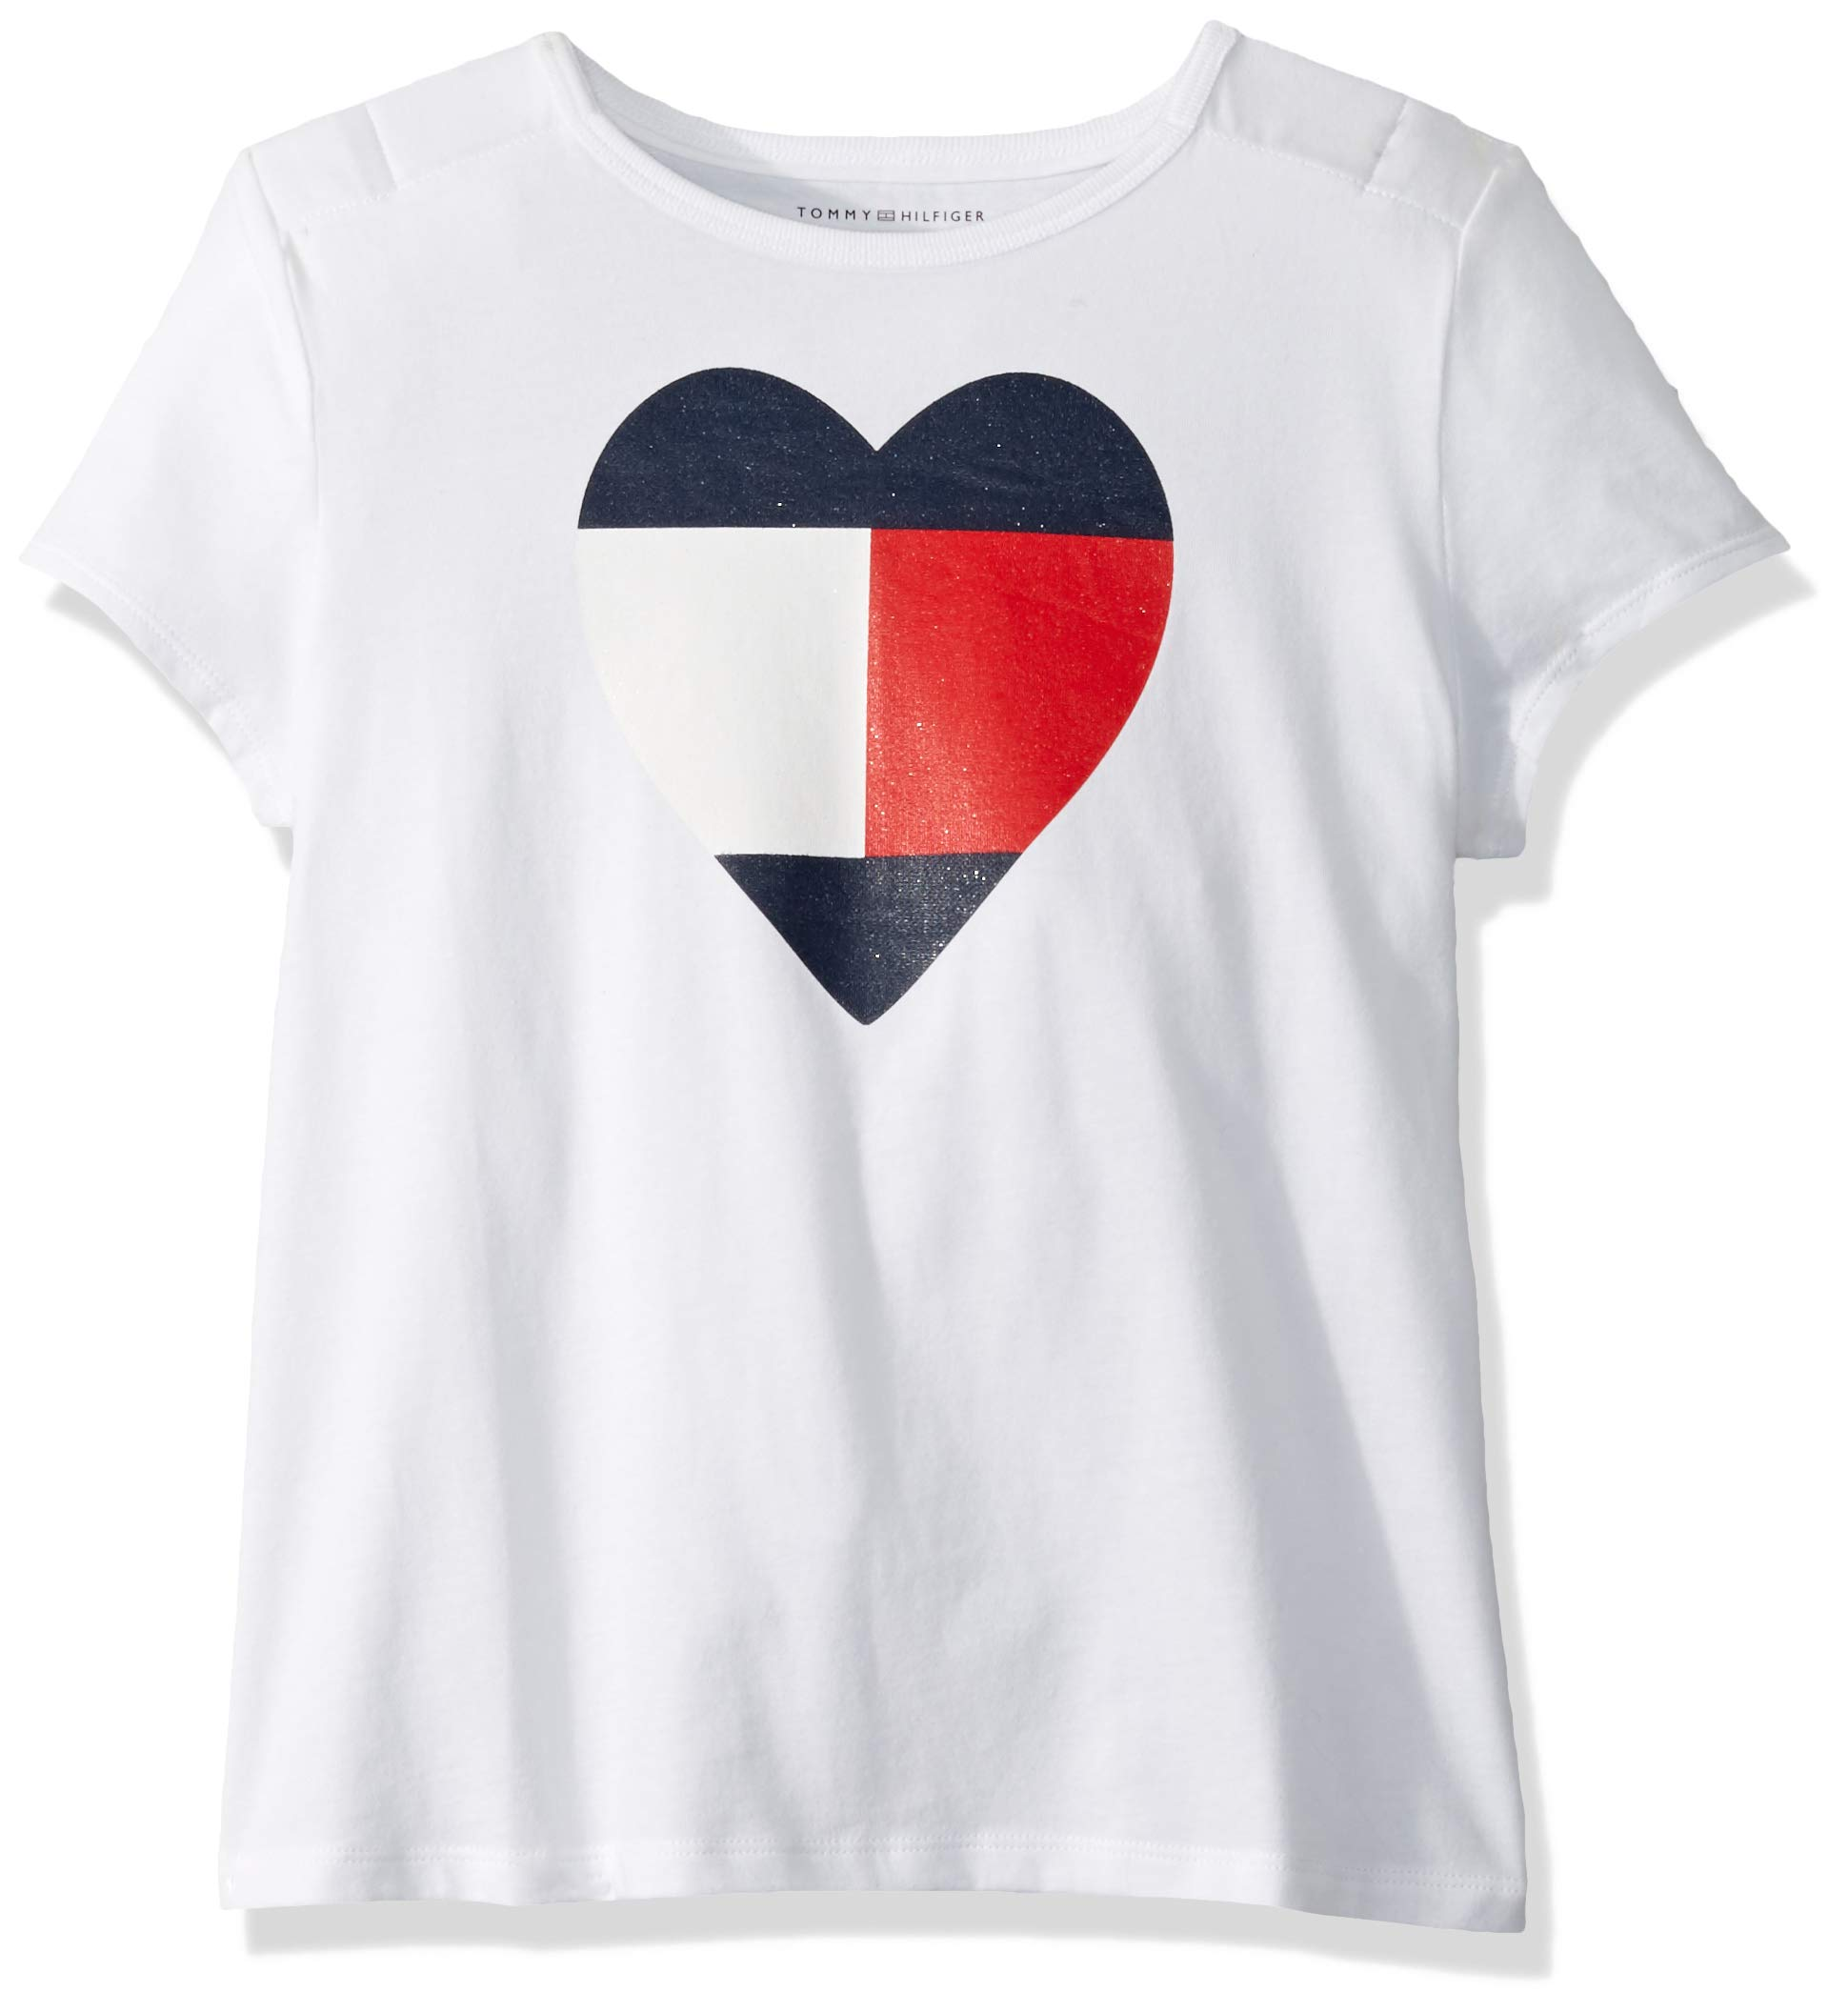 Tommy Hilfiger Girls' Big Adaptive T Shirt Magnetic Buttons at Shoulders